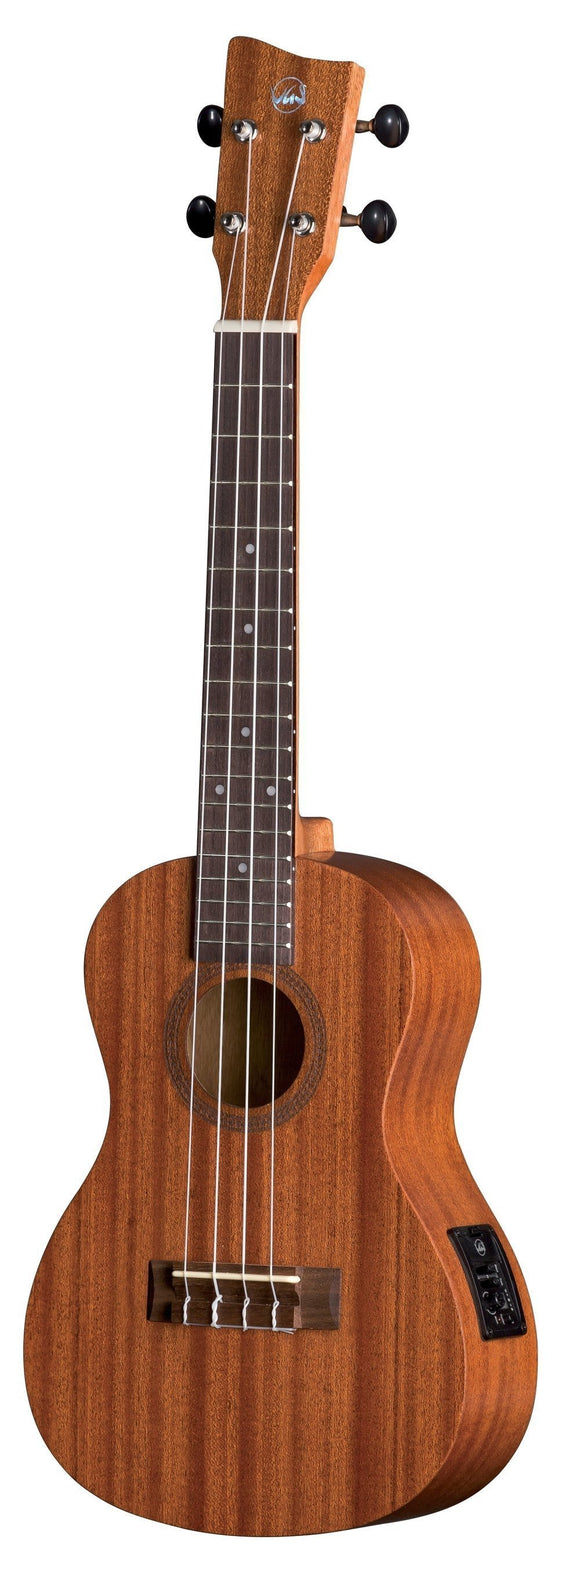 VGS Manoa El-acoustic Concert Uke with padded Cover (Lefthand)